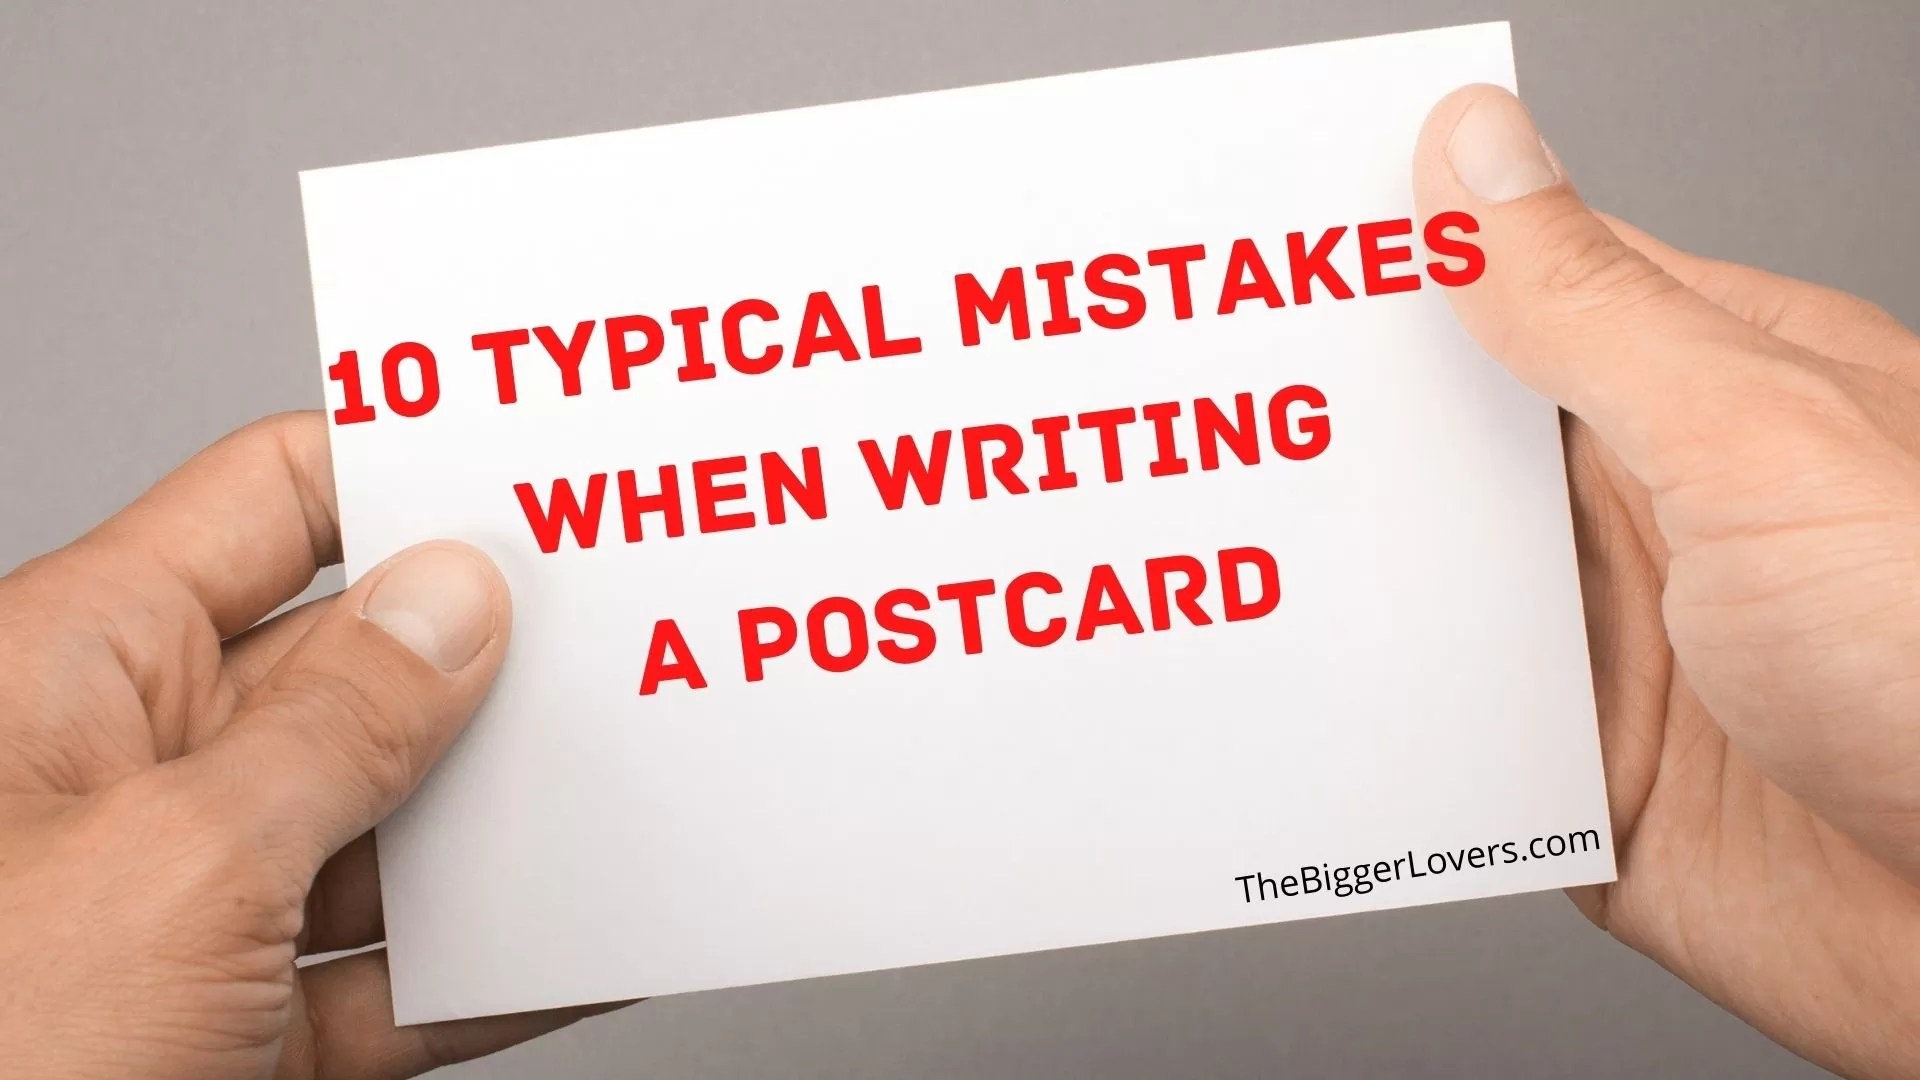 10 Typical Mistakes When Writing A Postcard